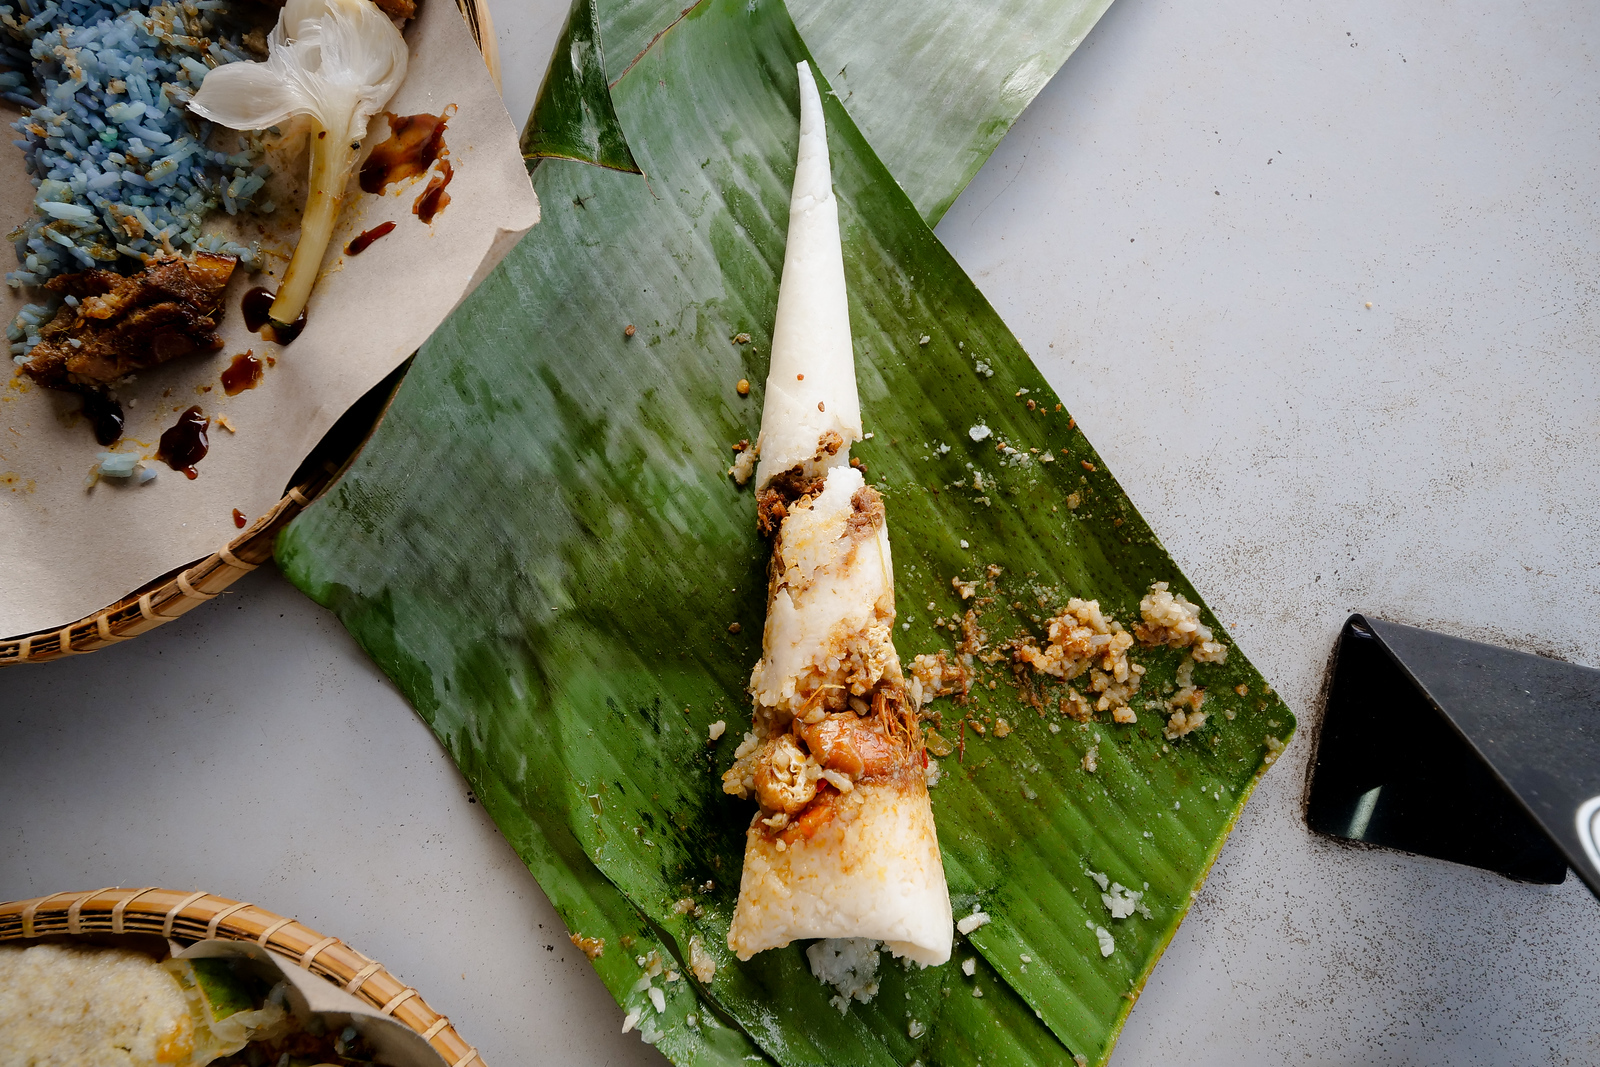 Cone shaped rolled snacks of shrimp and rice are also sold in front of the rice counter at Nasi Kerabu Panji